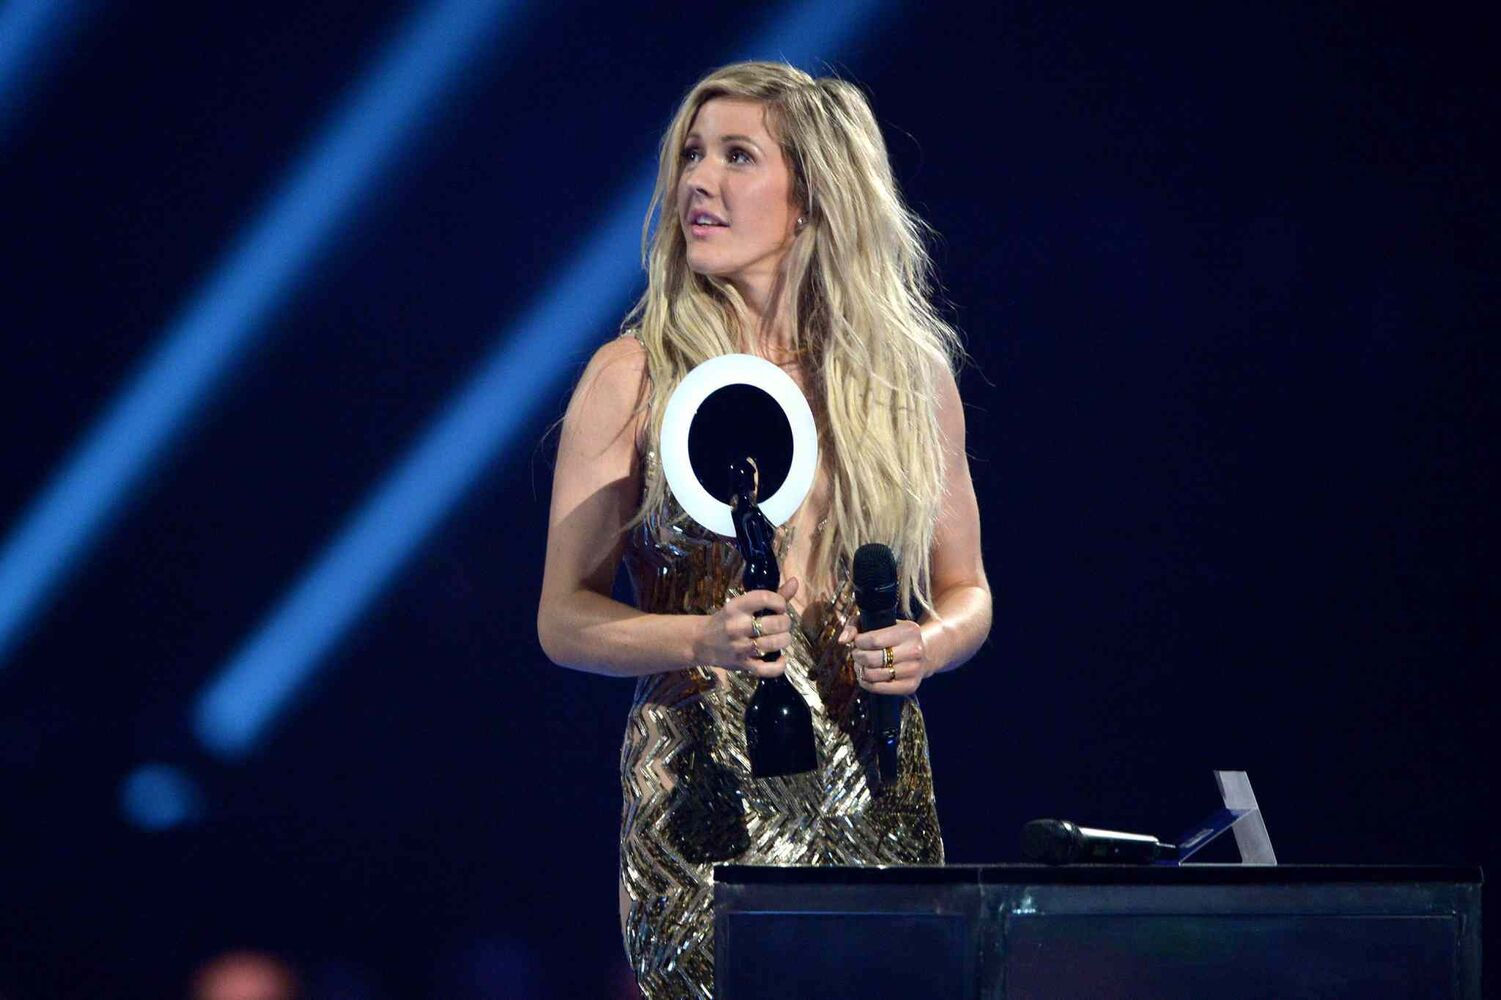 Singer Ellie Goulding accepts the award for best British Female Solo Artist onstage at the BRIT Awards 2014 at the O2 Arena in London on Wednesday, Feb. 19, 2014. (Jon Furniss / Invision/ The Associated Press)